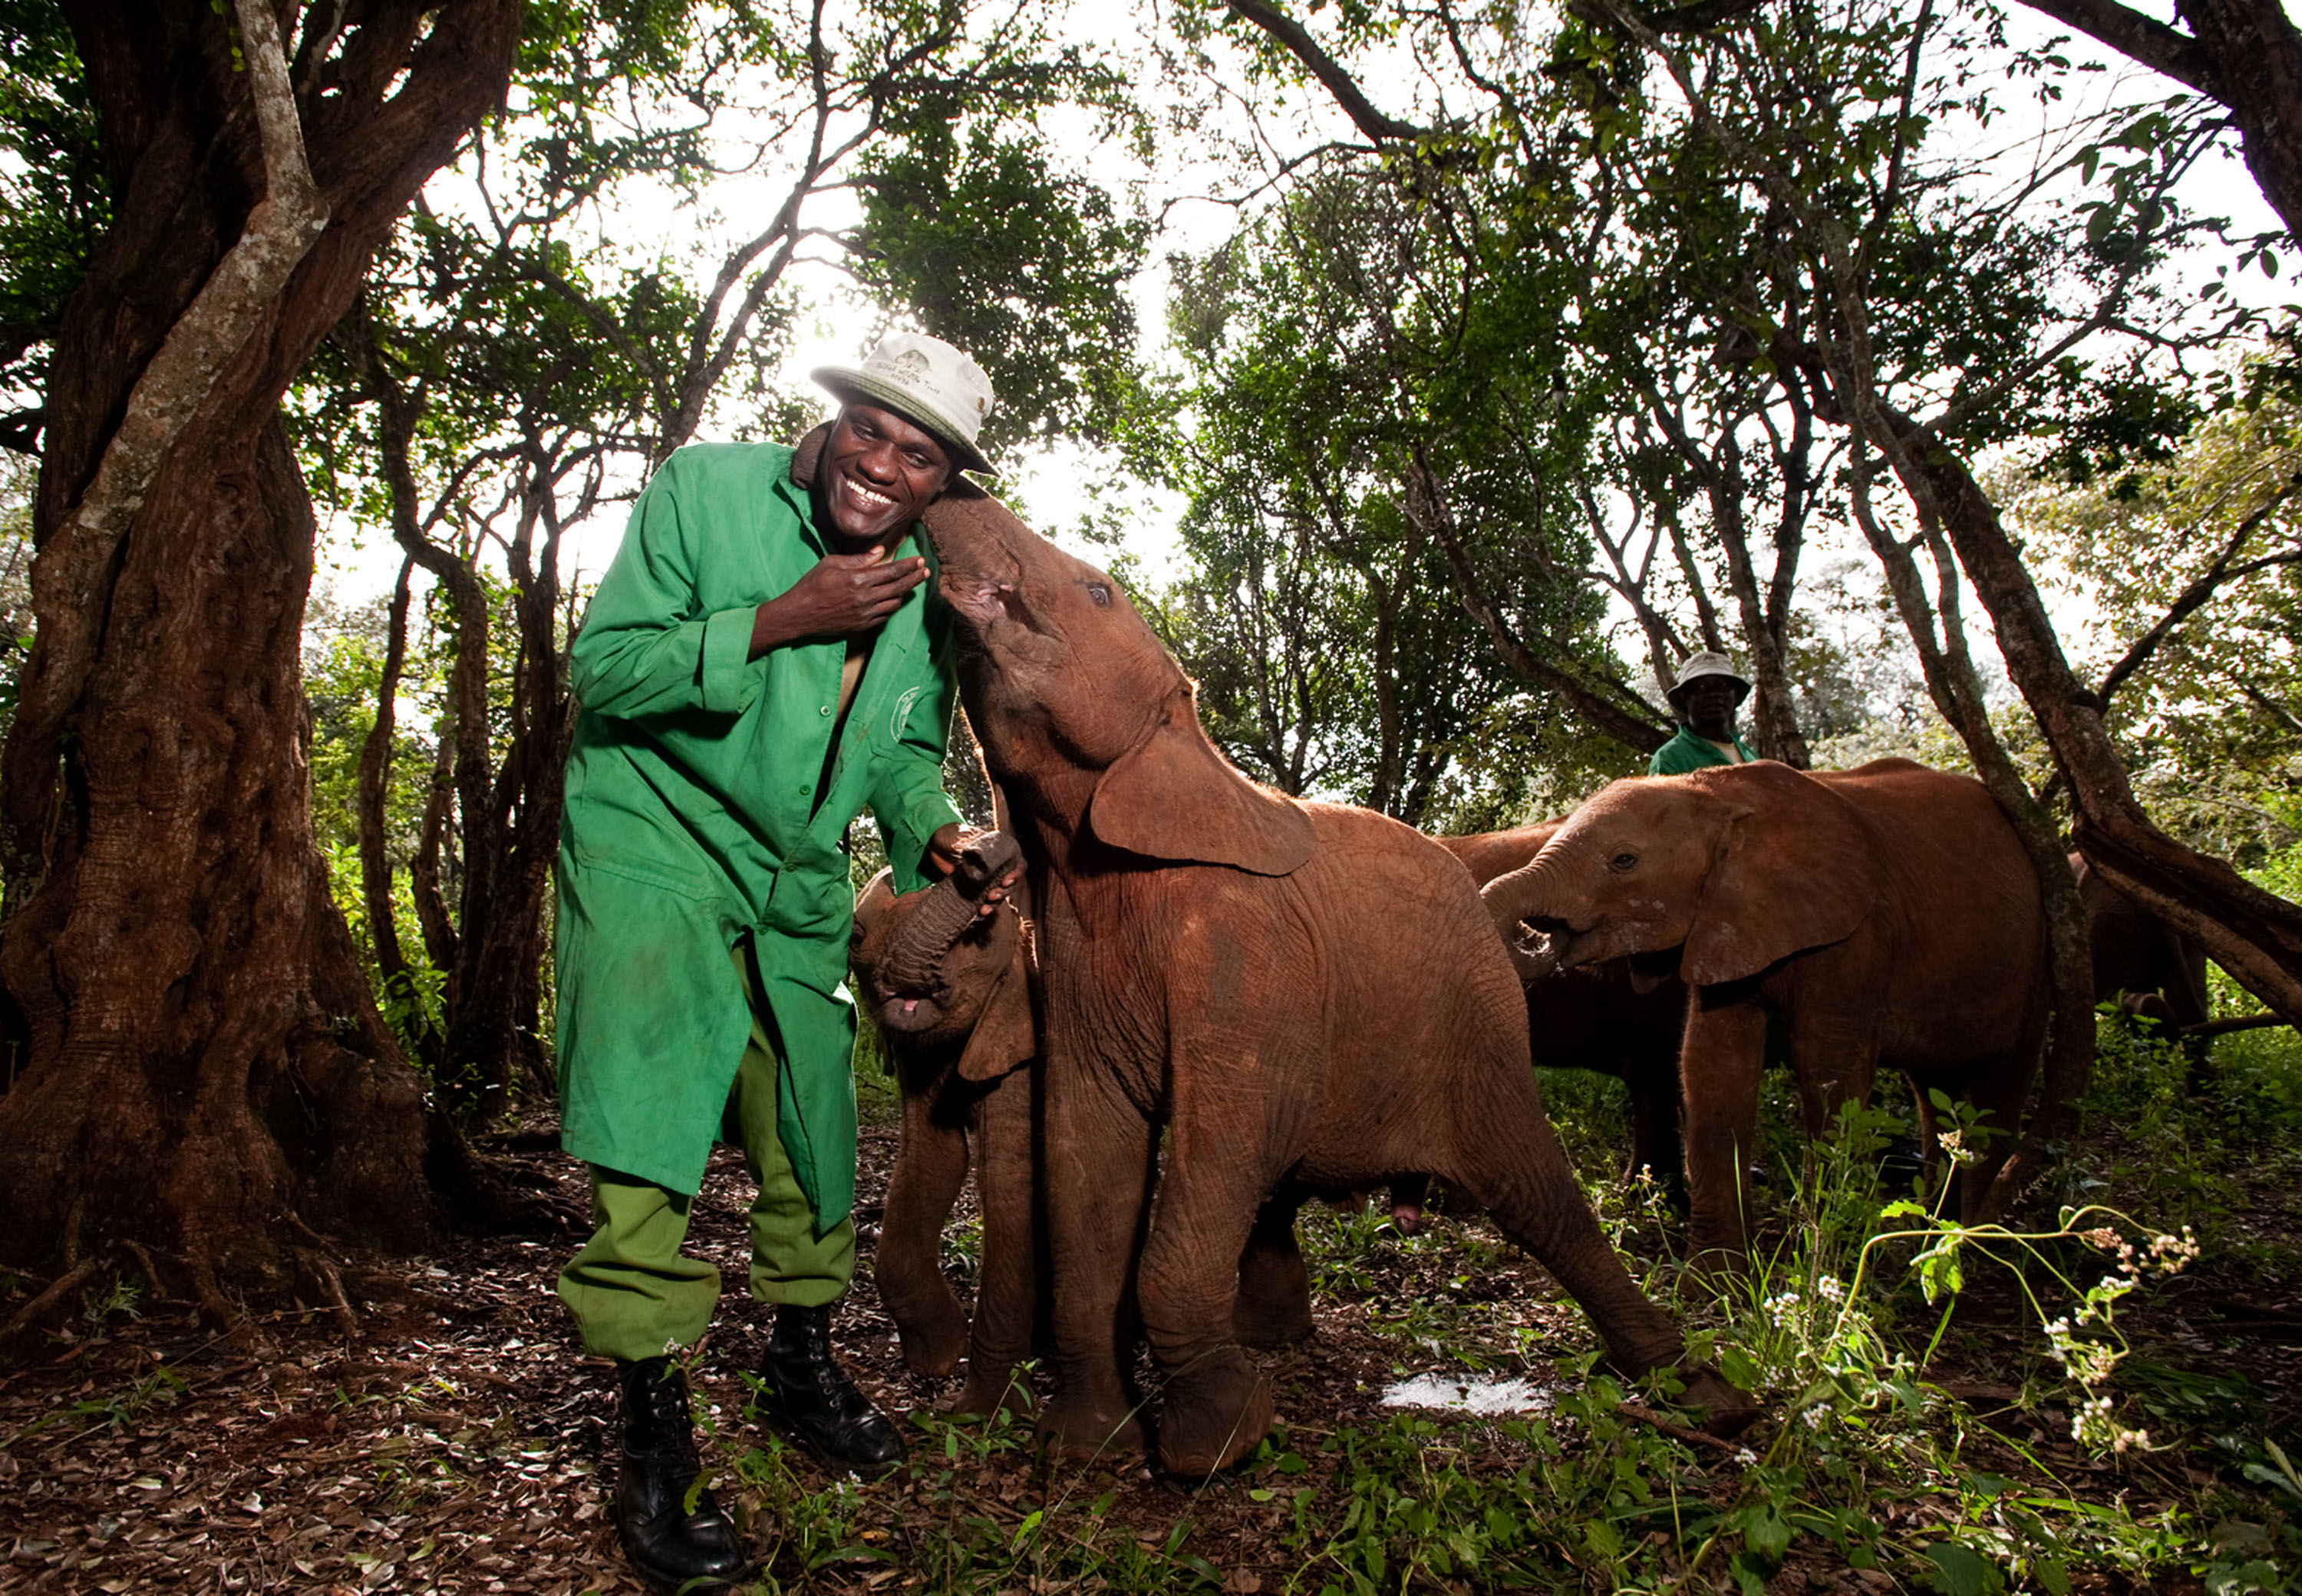 African man in a green coat with 3 baby elephants - one with its trunk around his neck